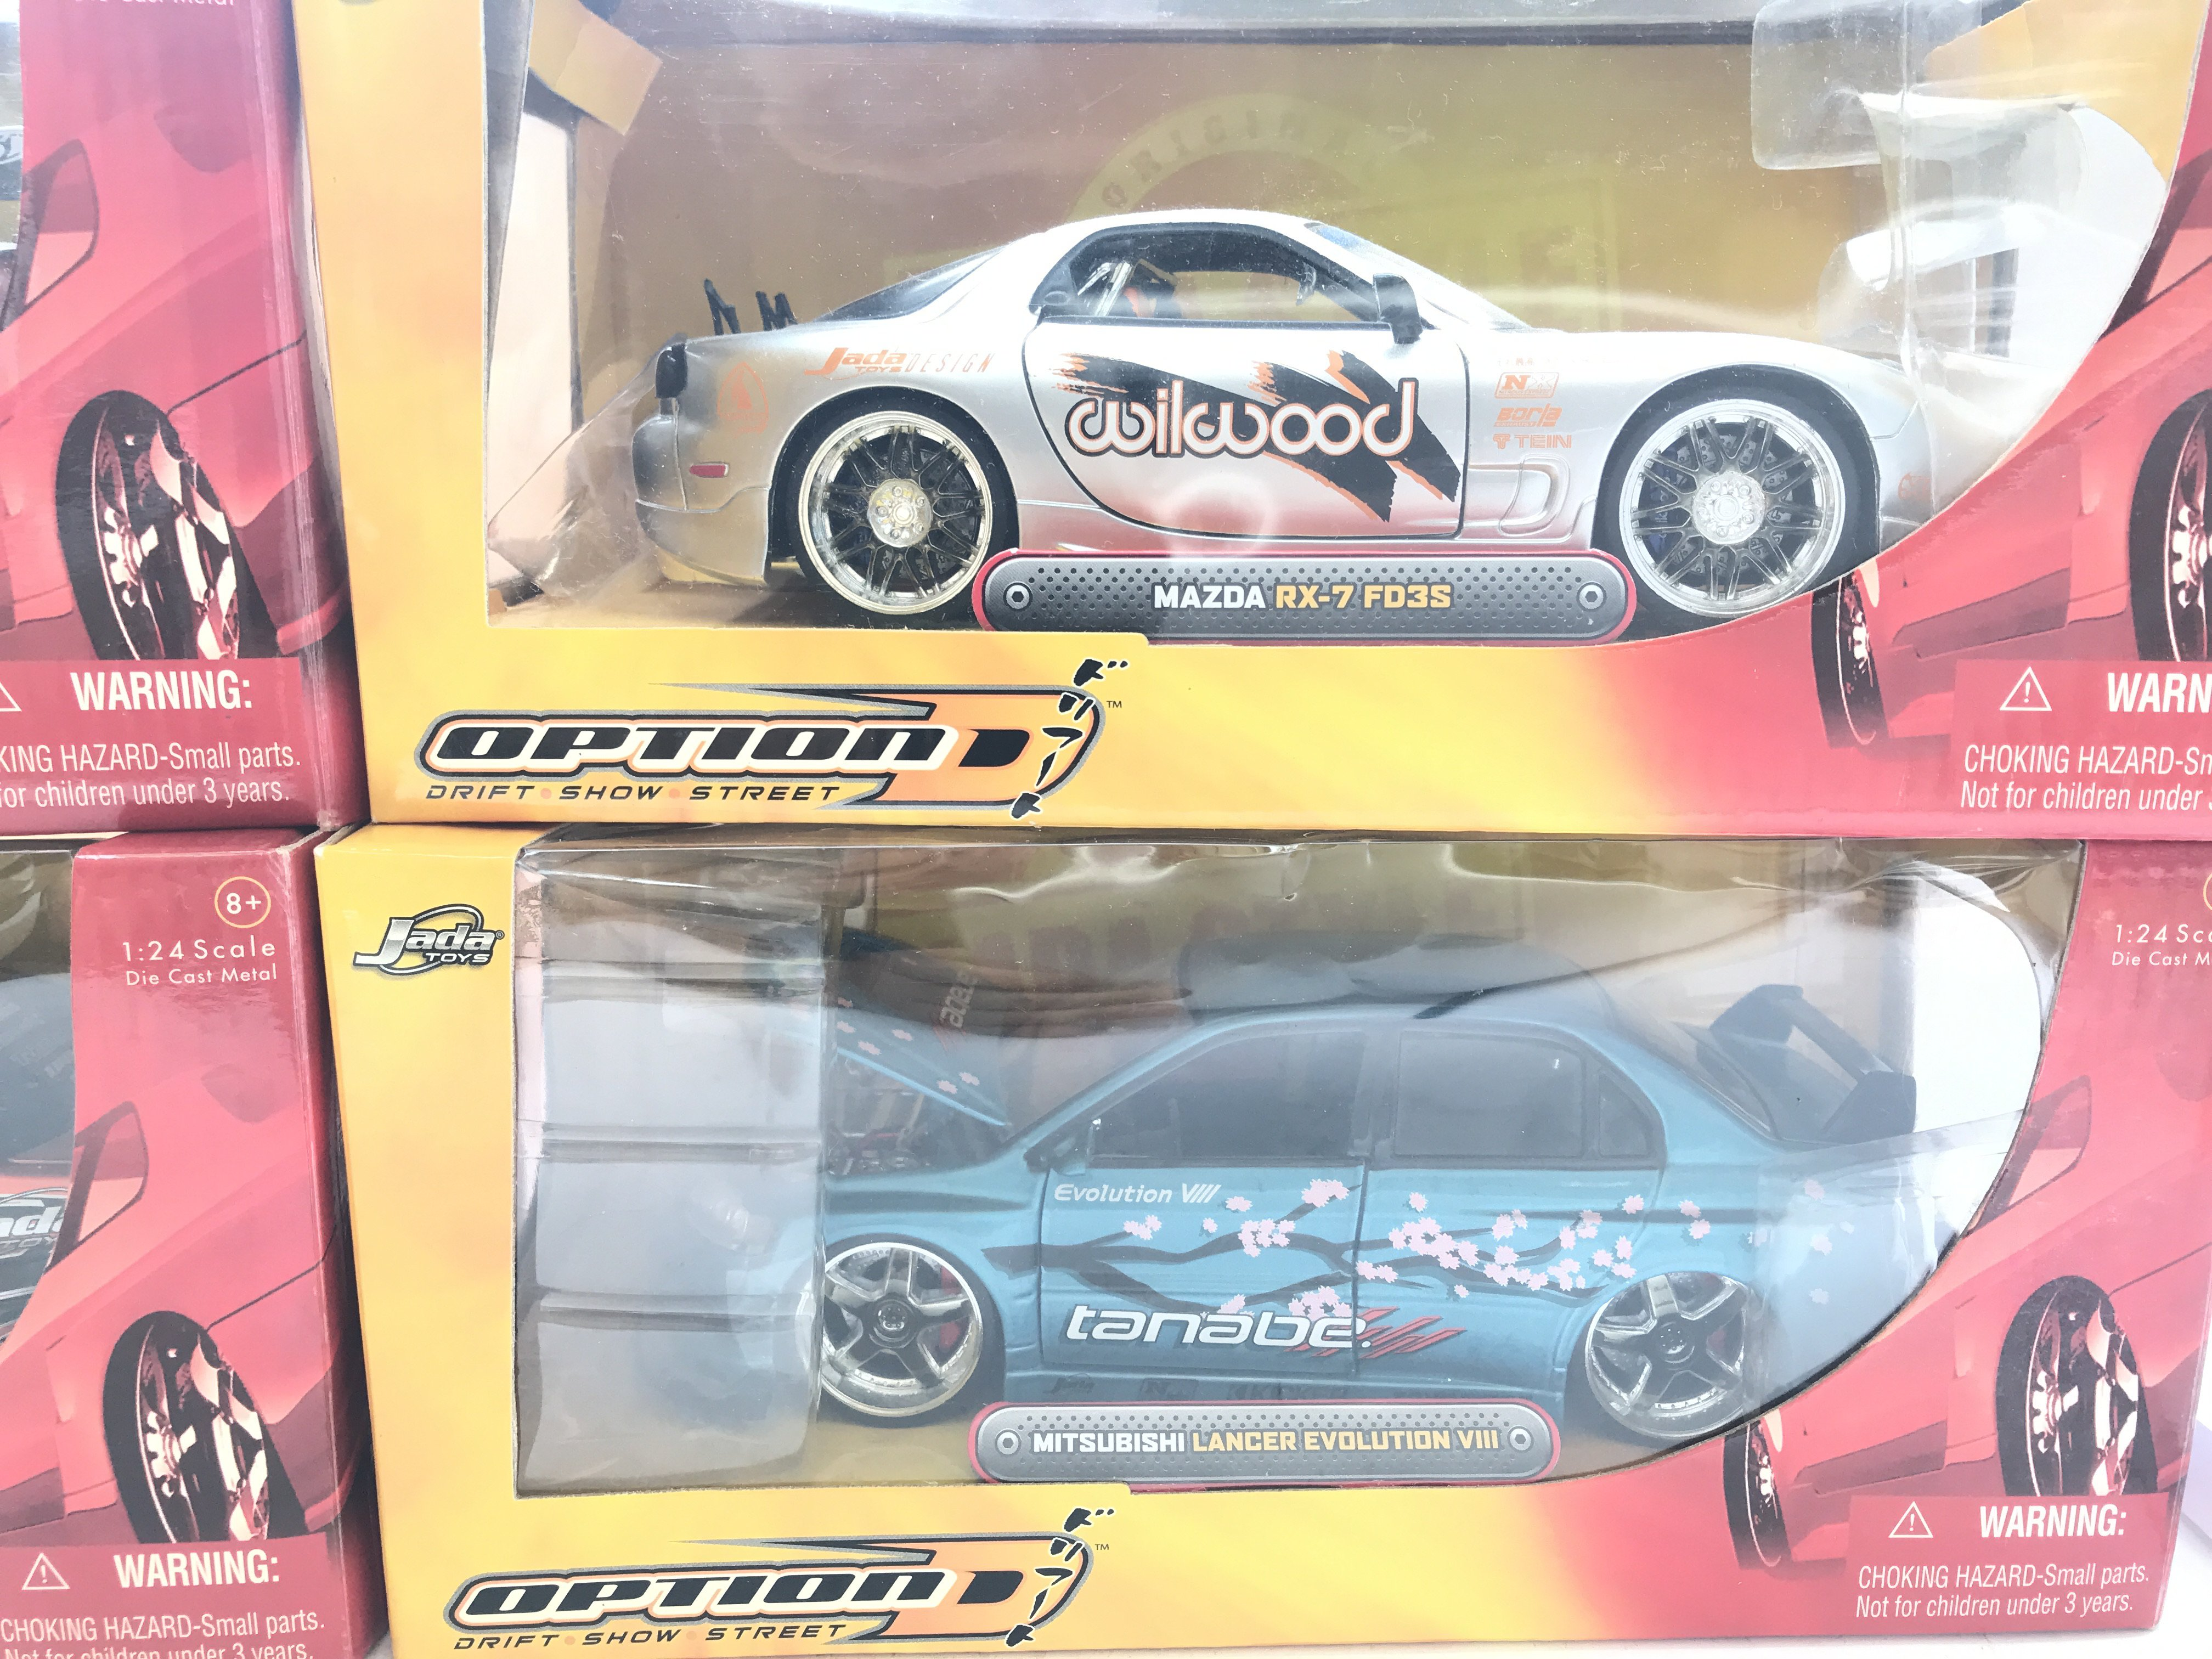 4 X Jada Toys Boxed Cars Scale 1:24 including Scio - Image 3 of 3